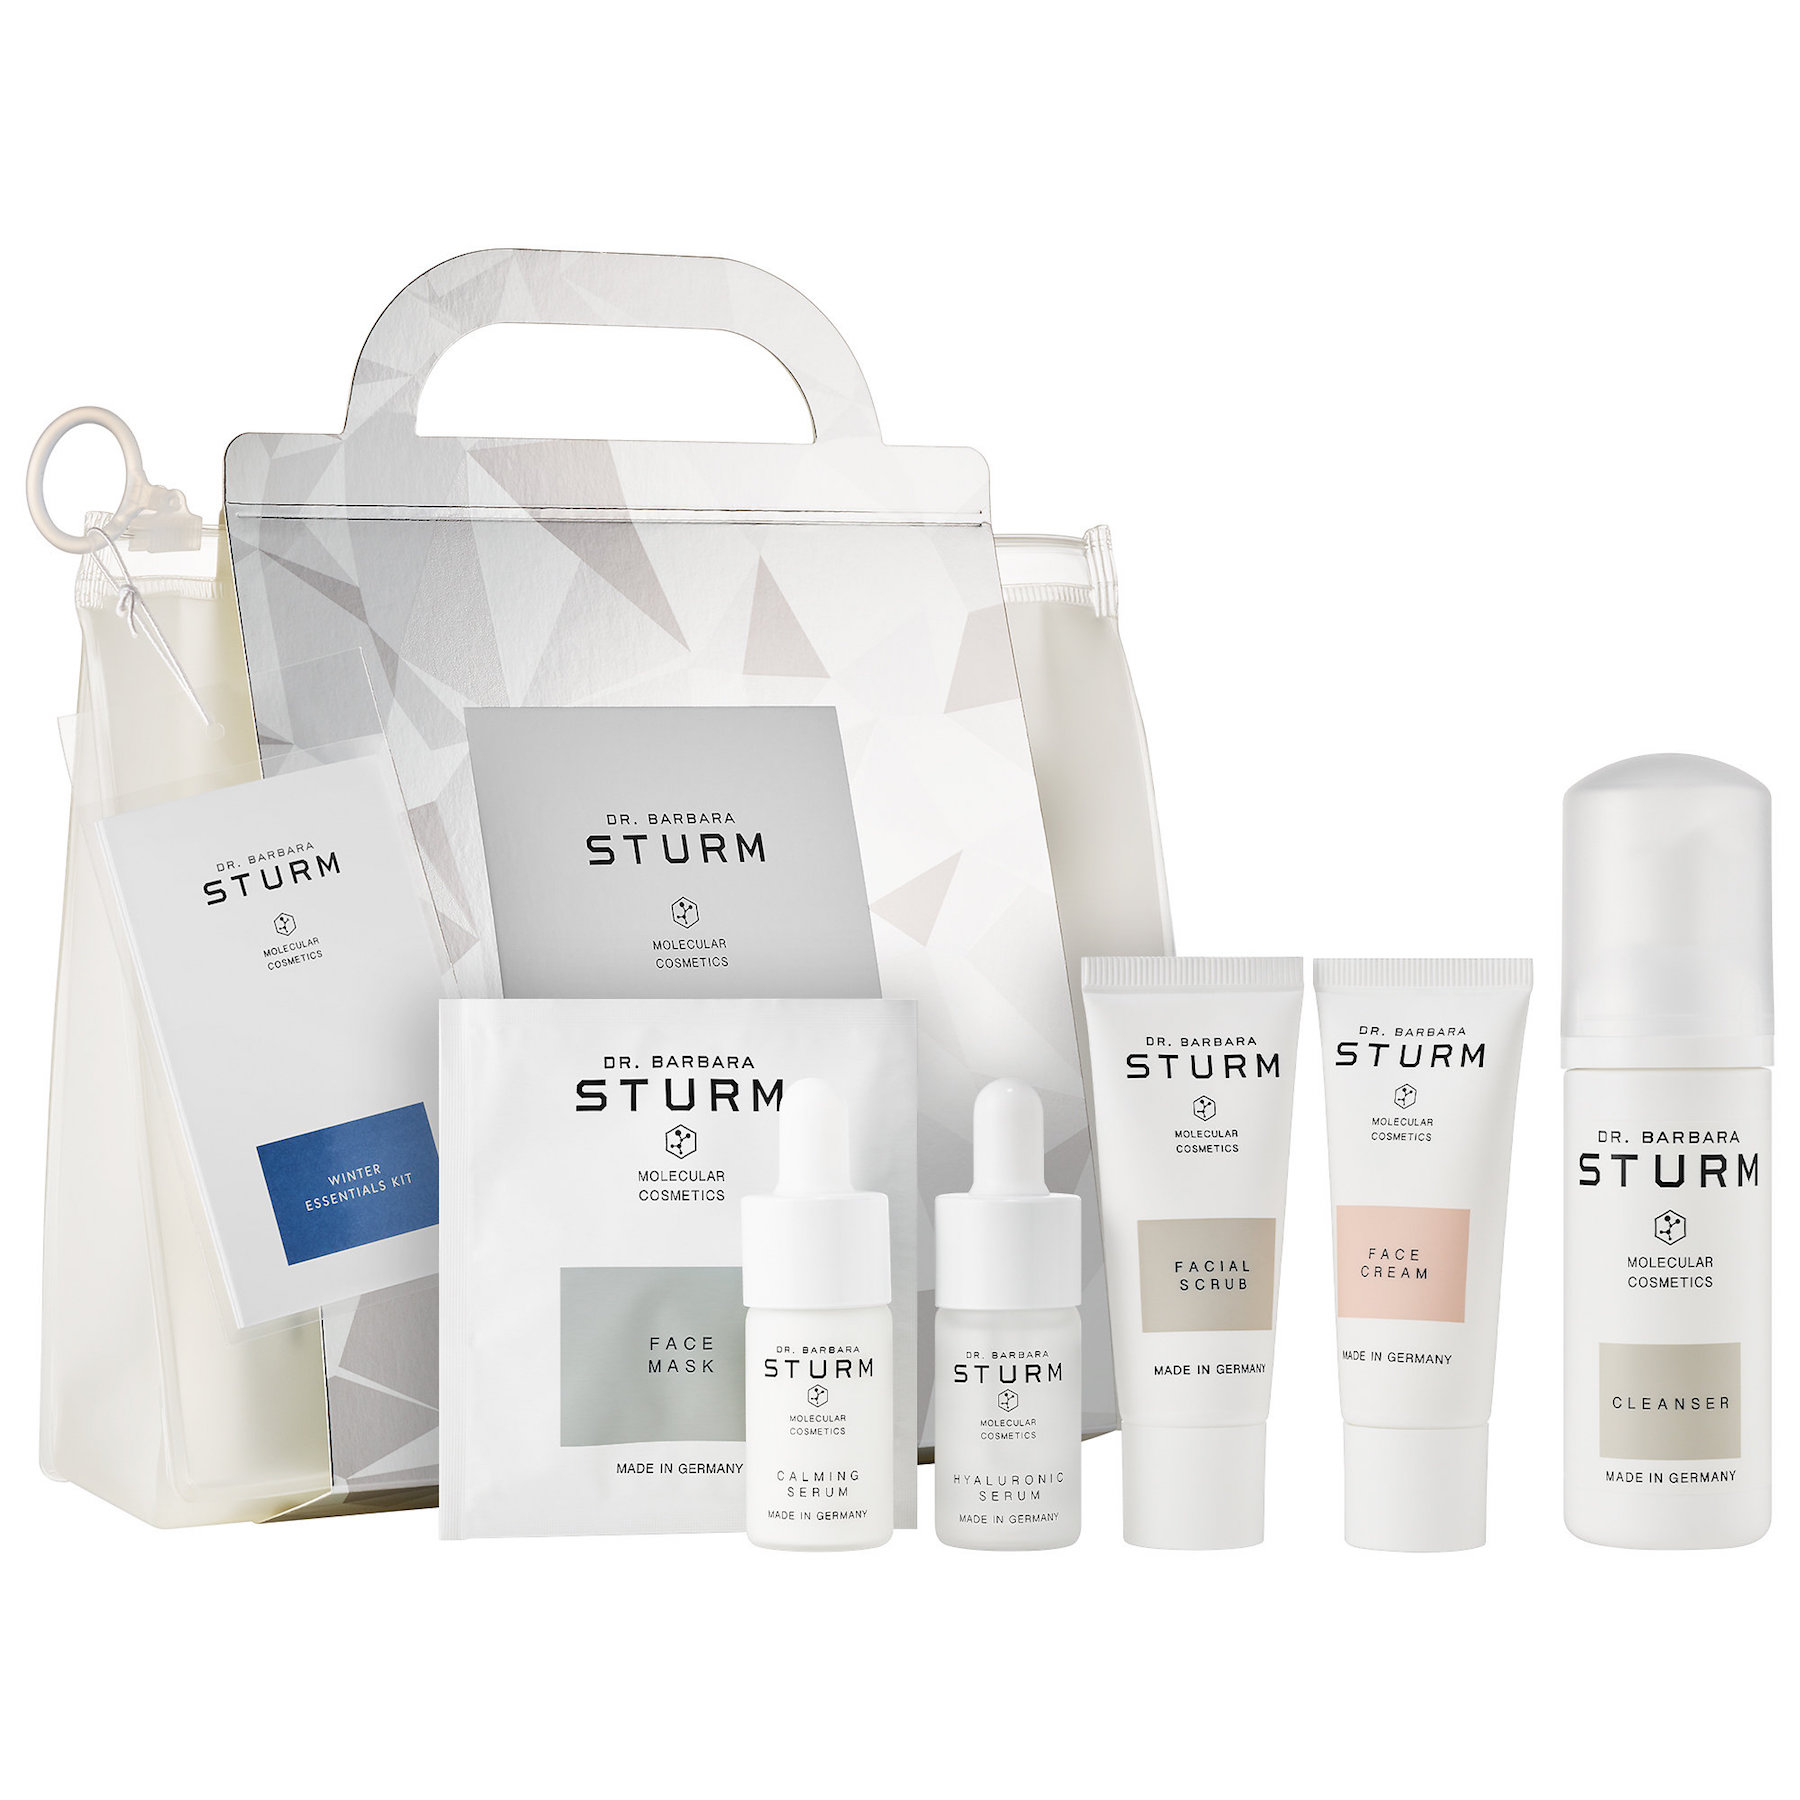 winter skincare essentials kit from Dr. Barbara Sturm